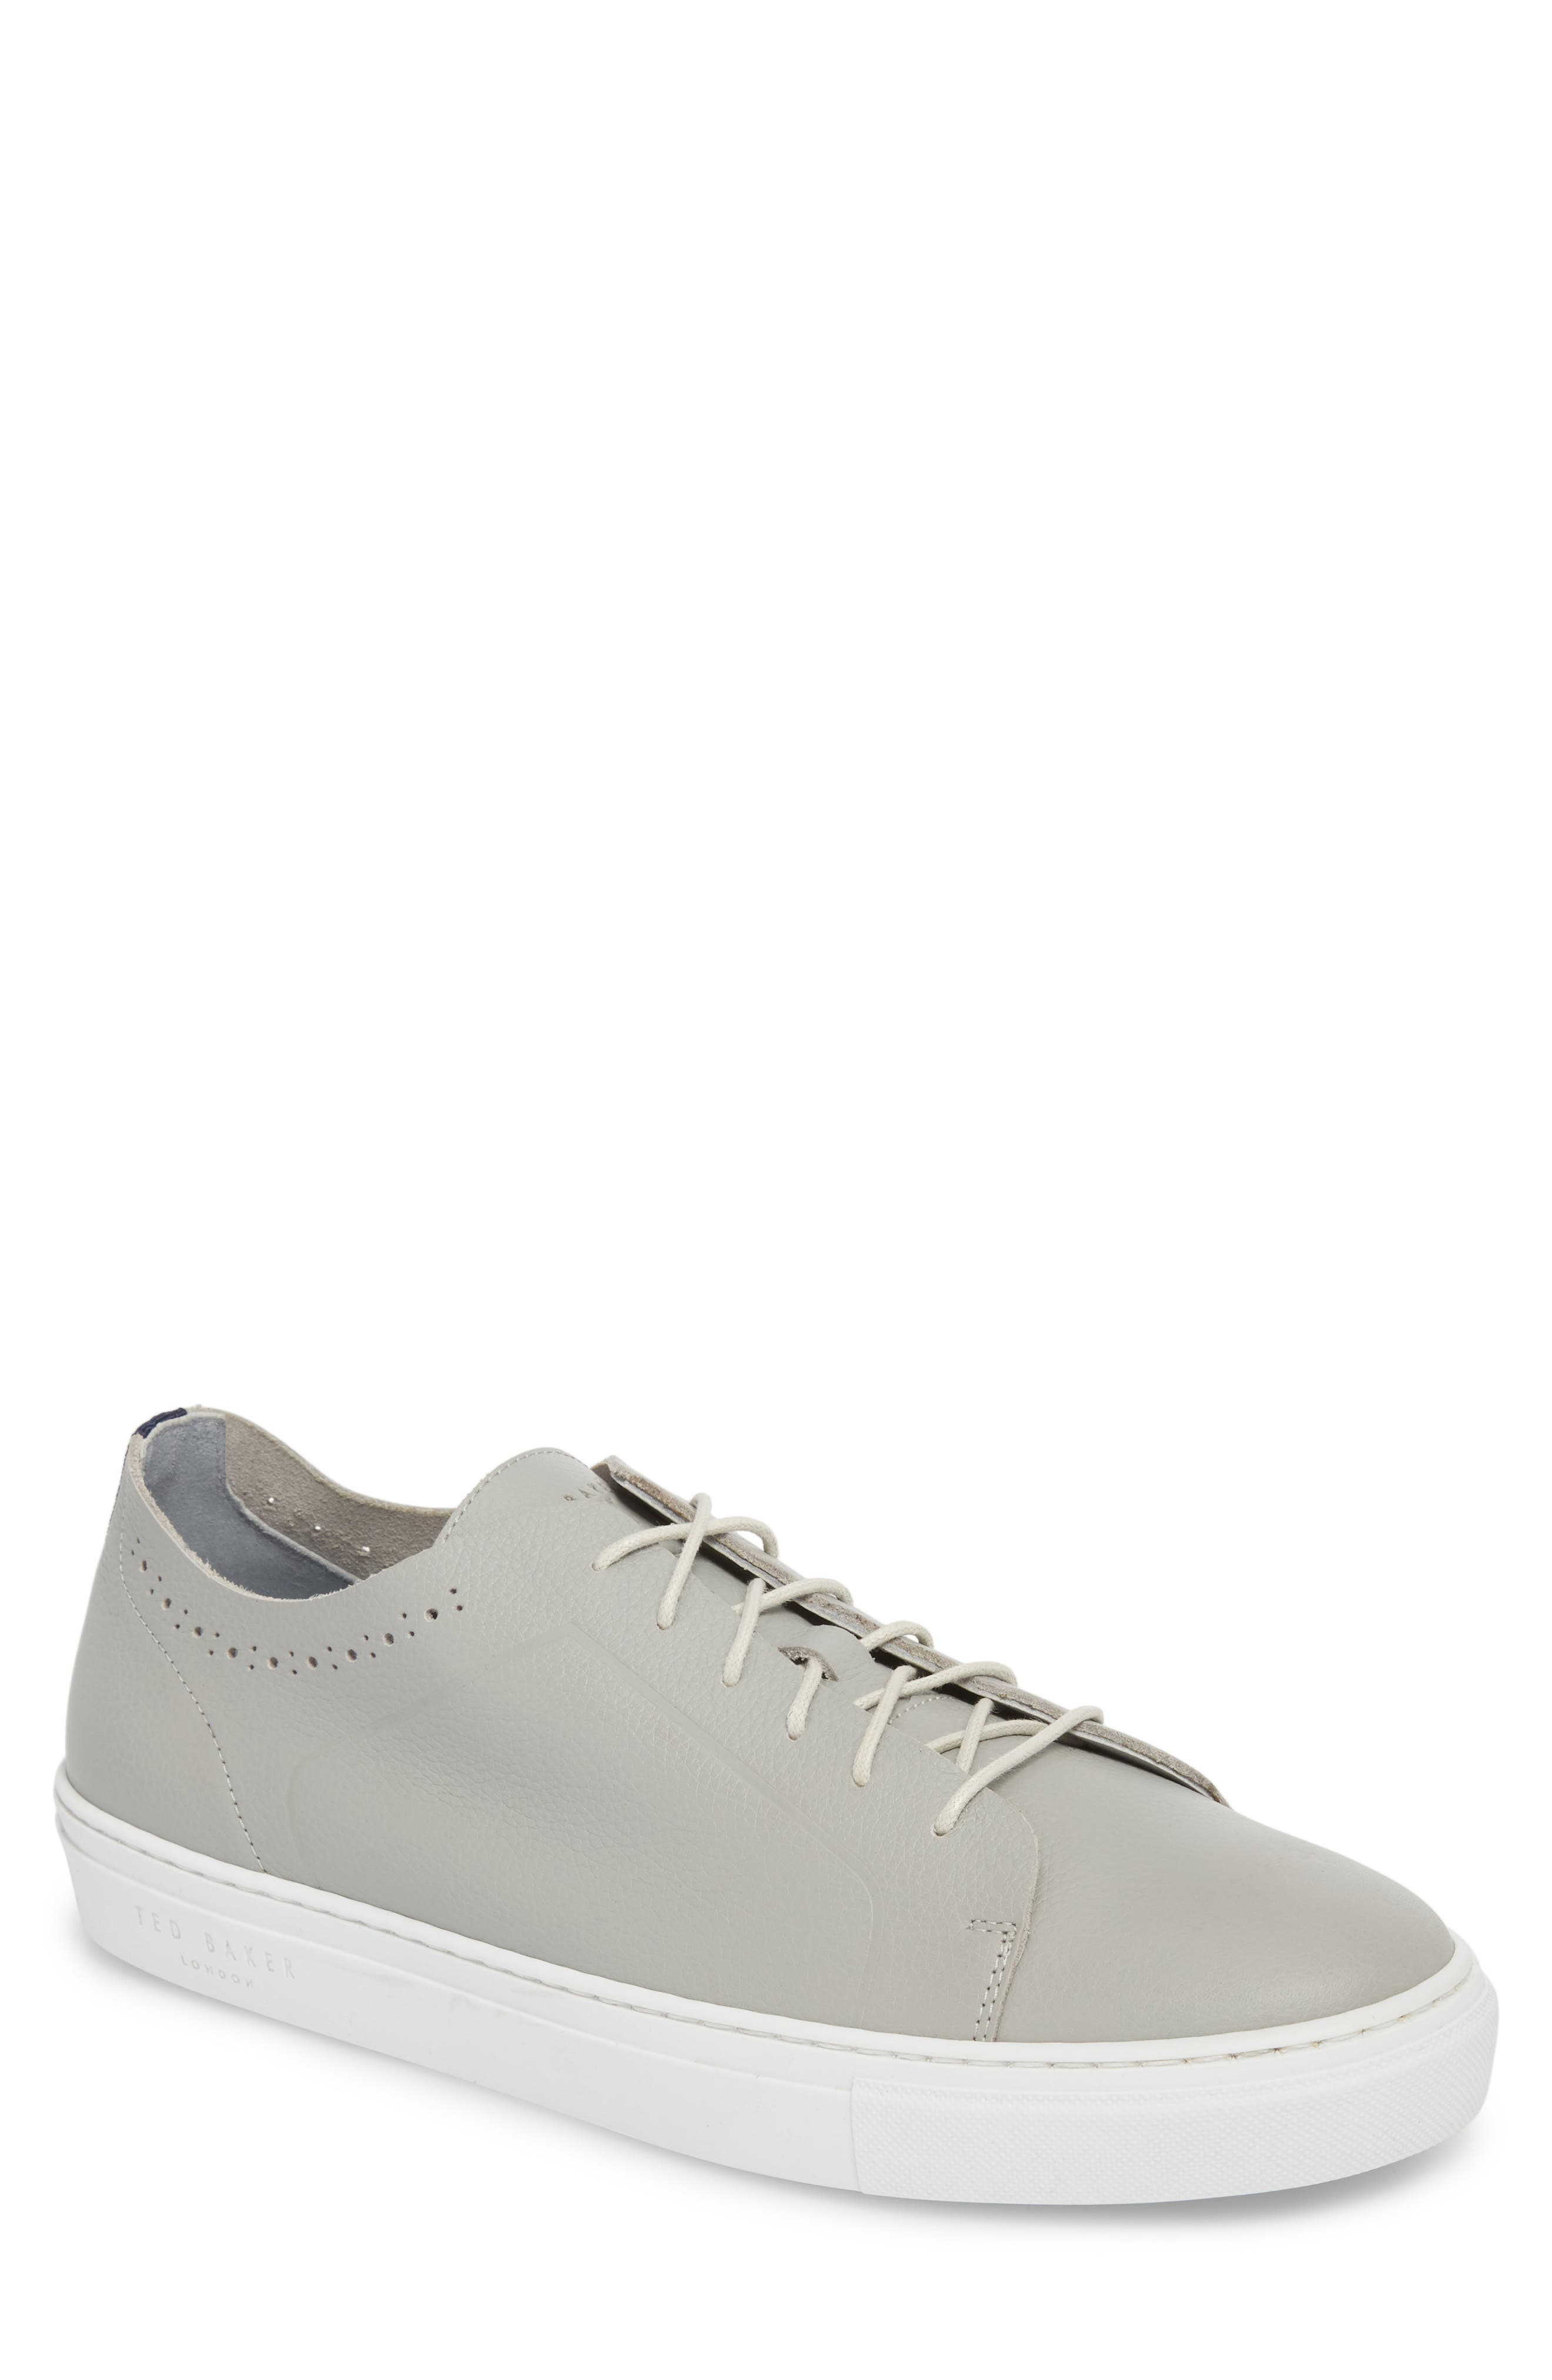 Nowull Brogued Sneaker,                             Main thumbnail 1, color,                             LIGHT GREY LEATHER